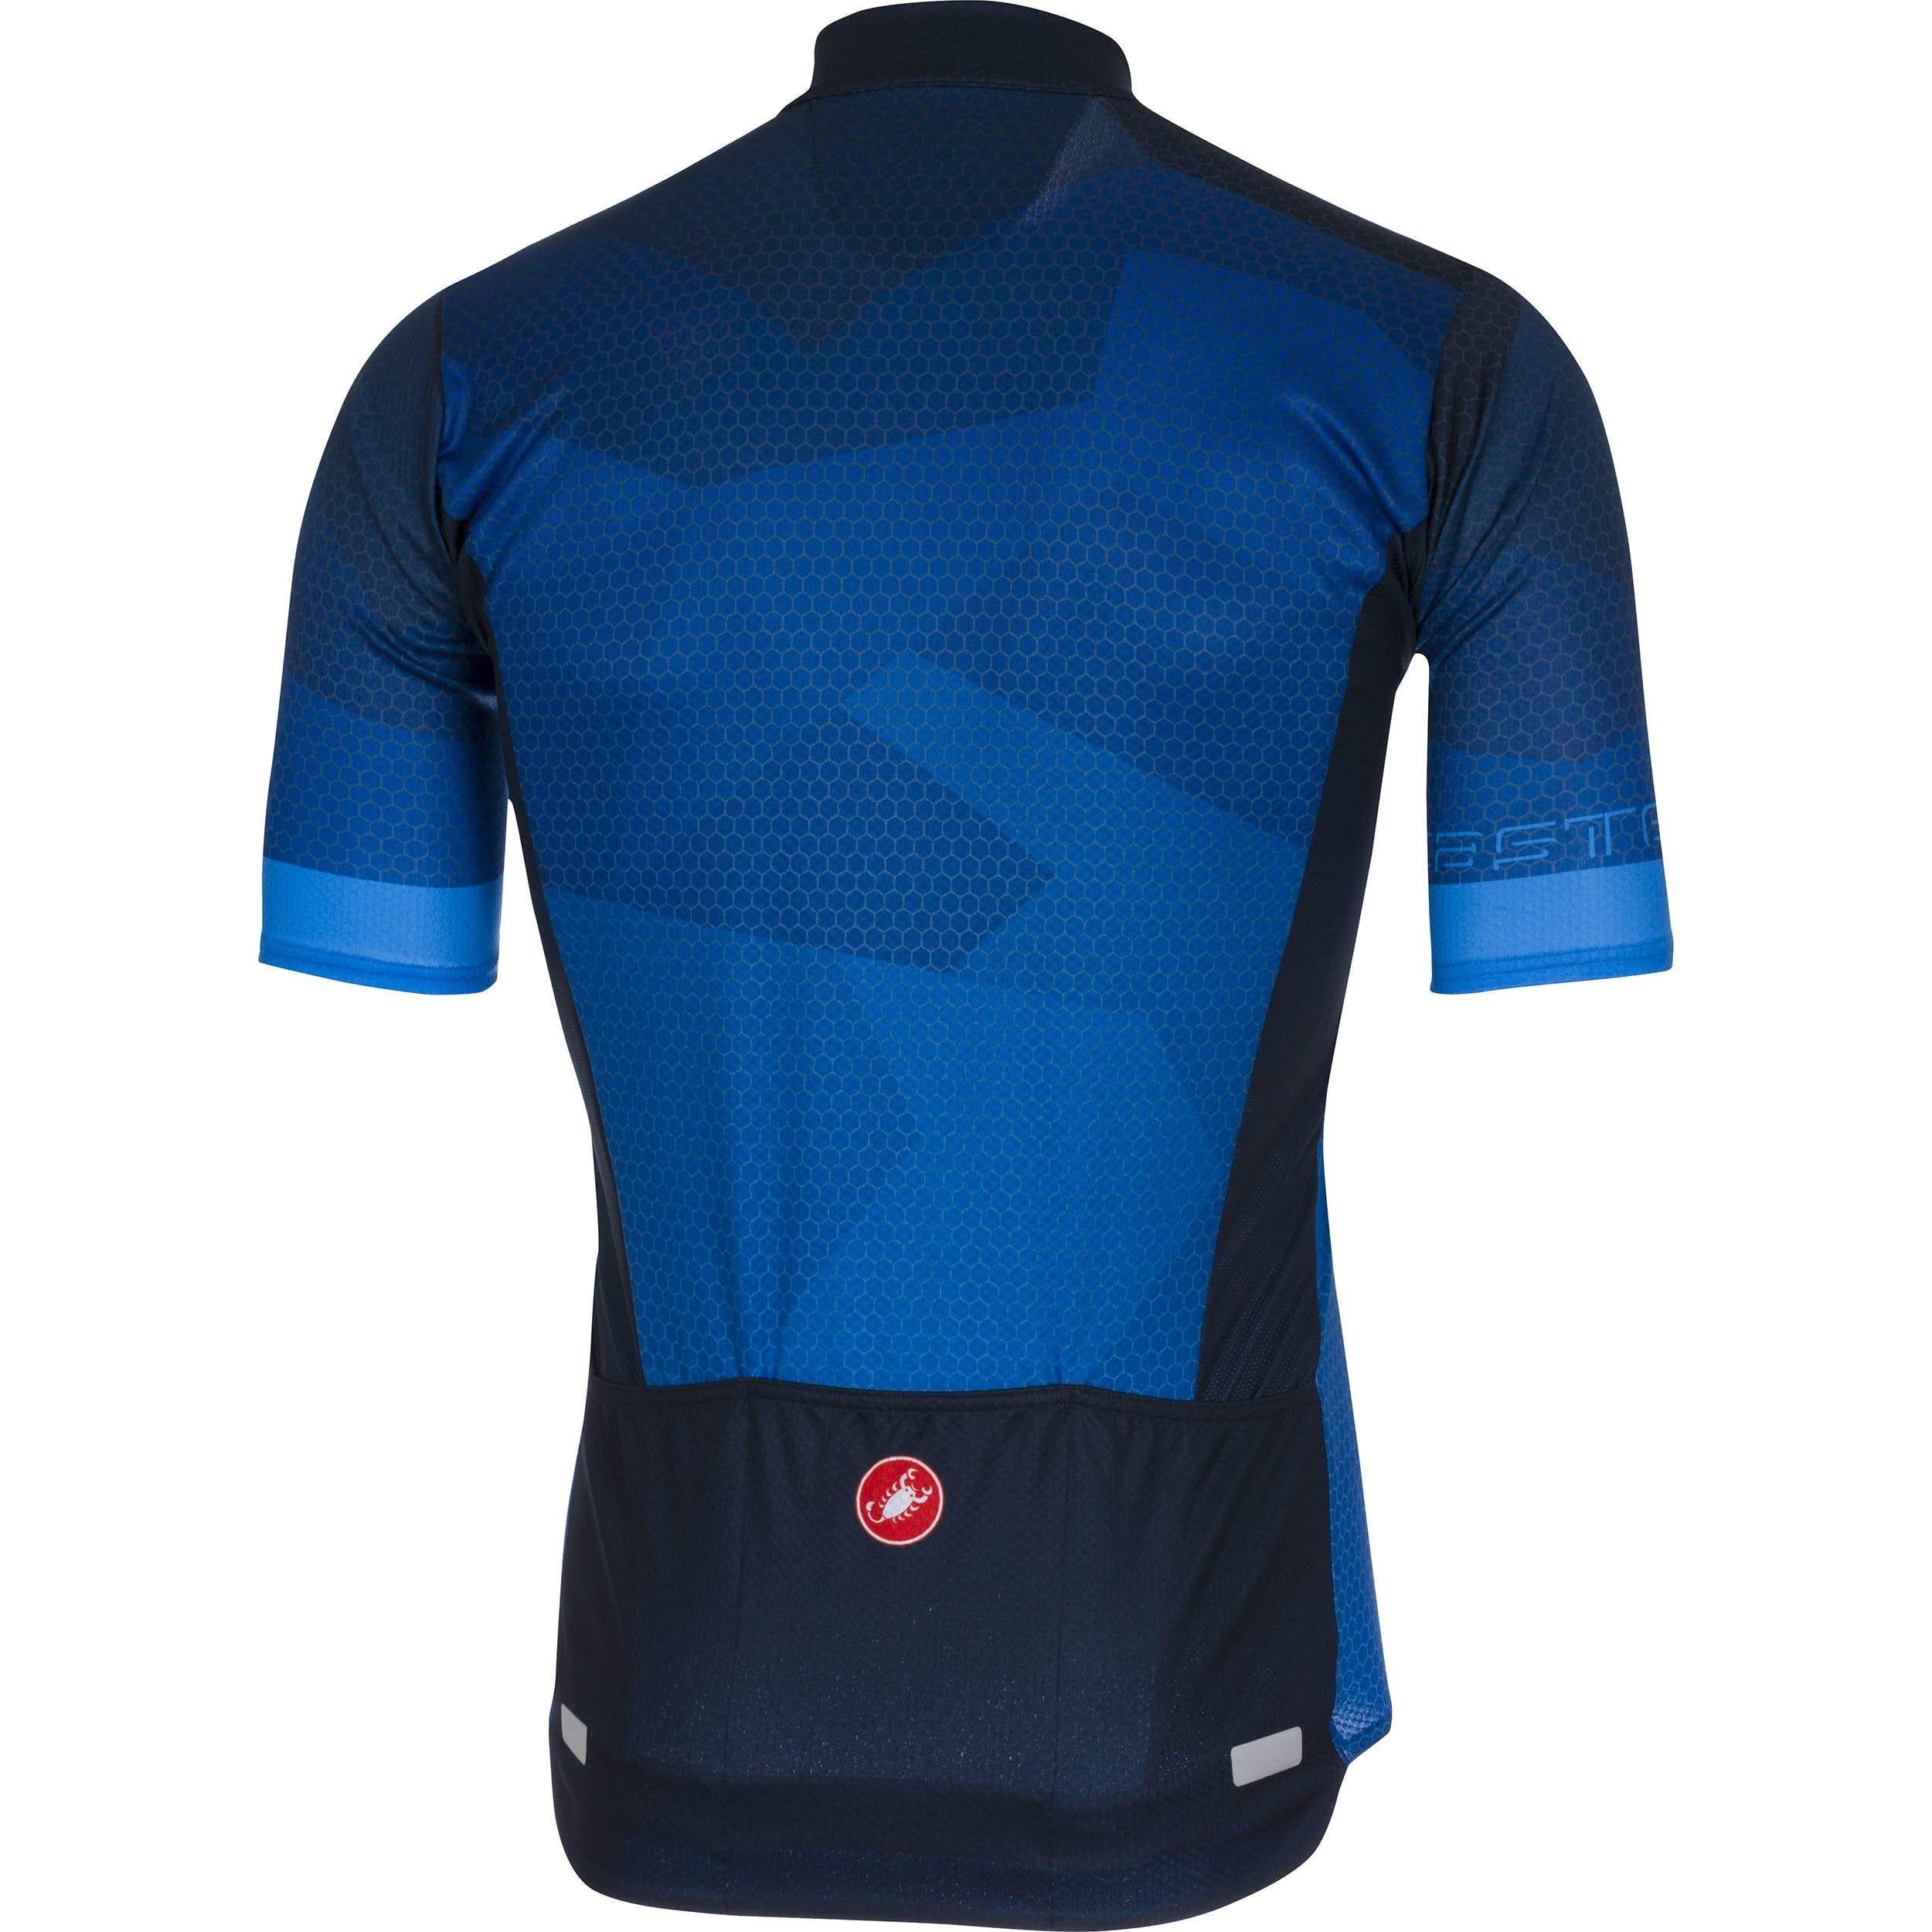 Castelli Men's Flusso Full Zipper Jersey - Surf Blue